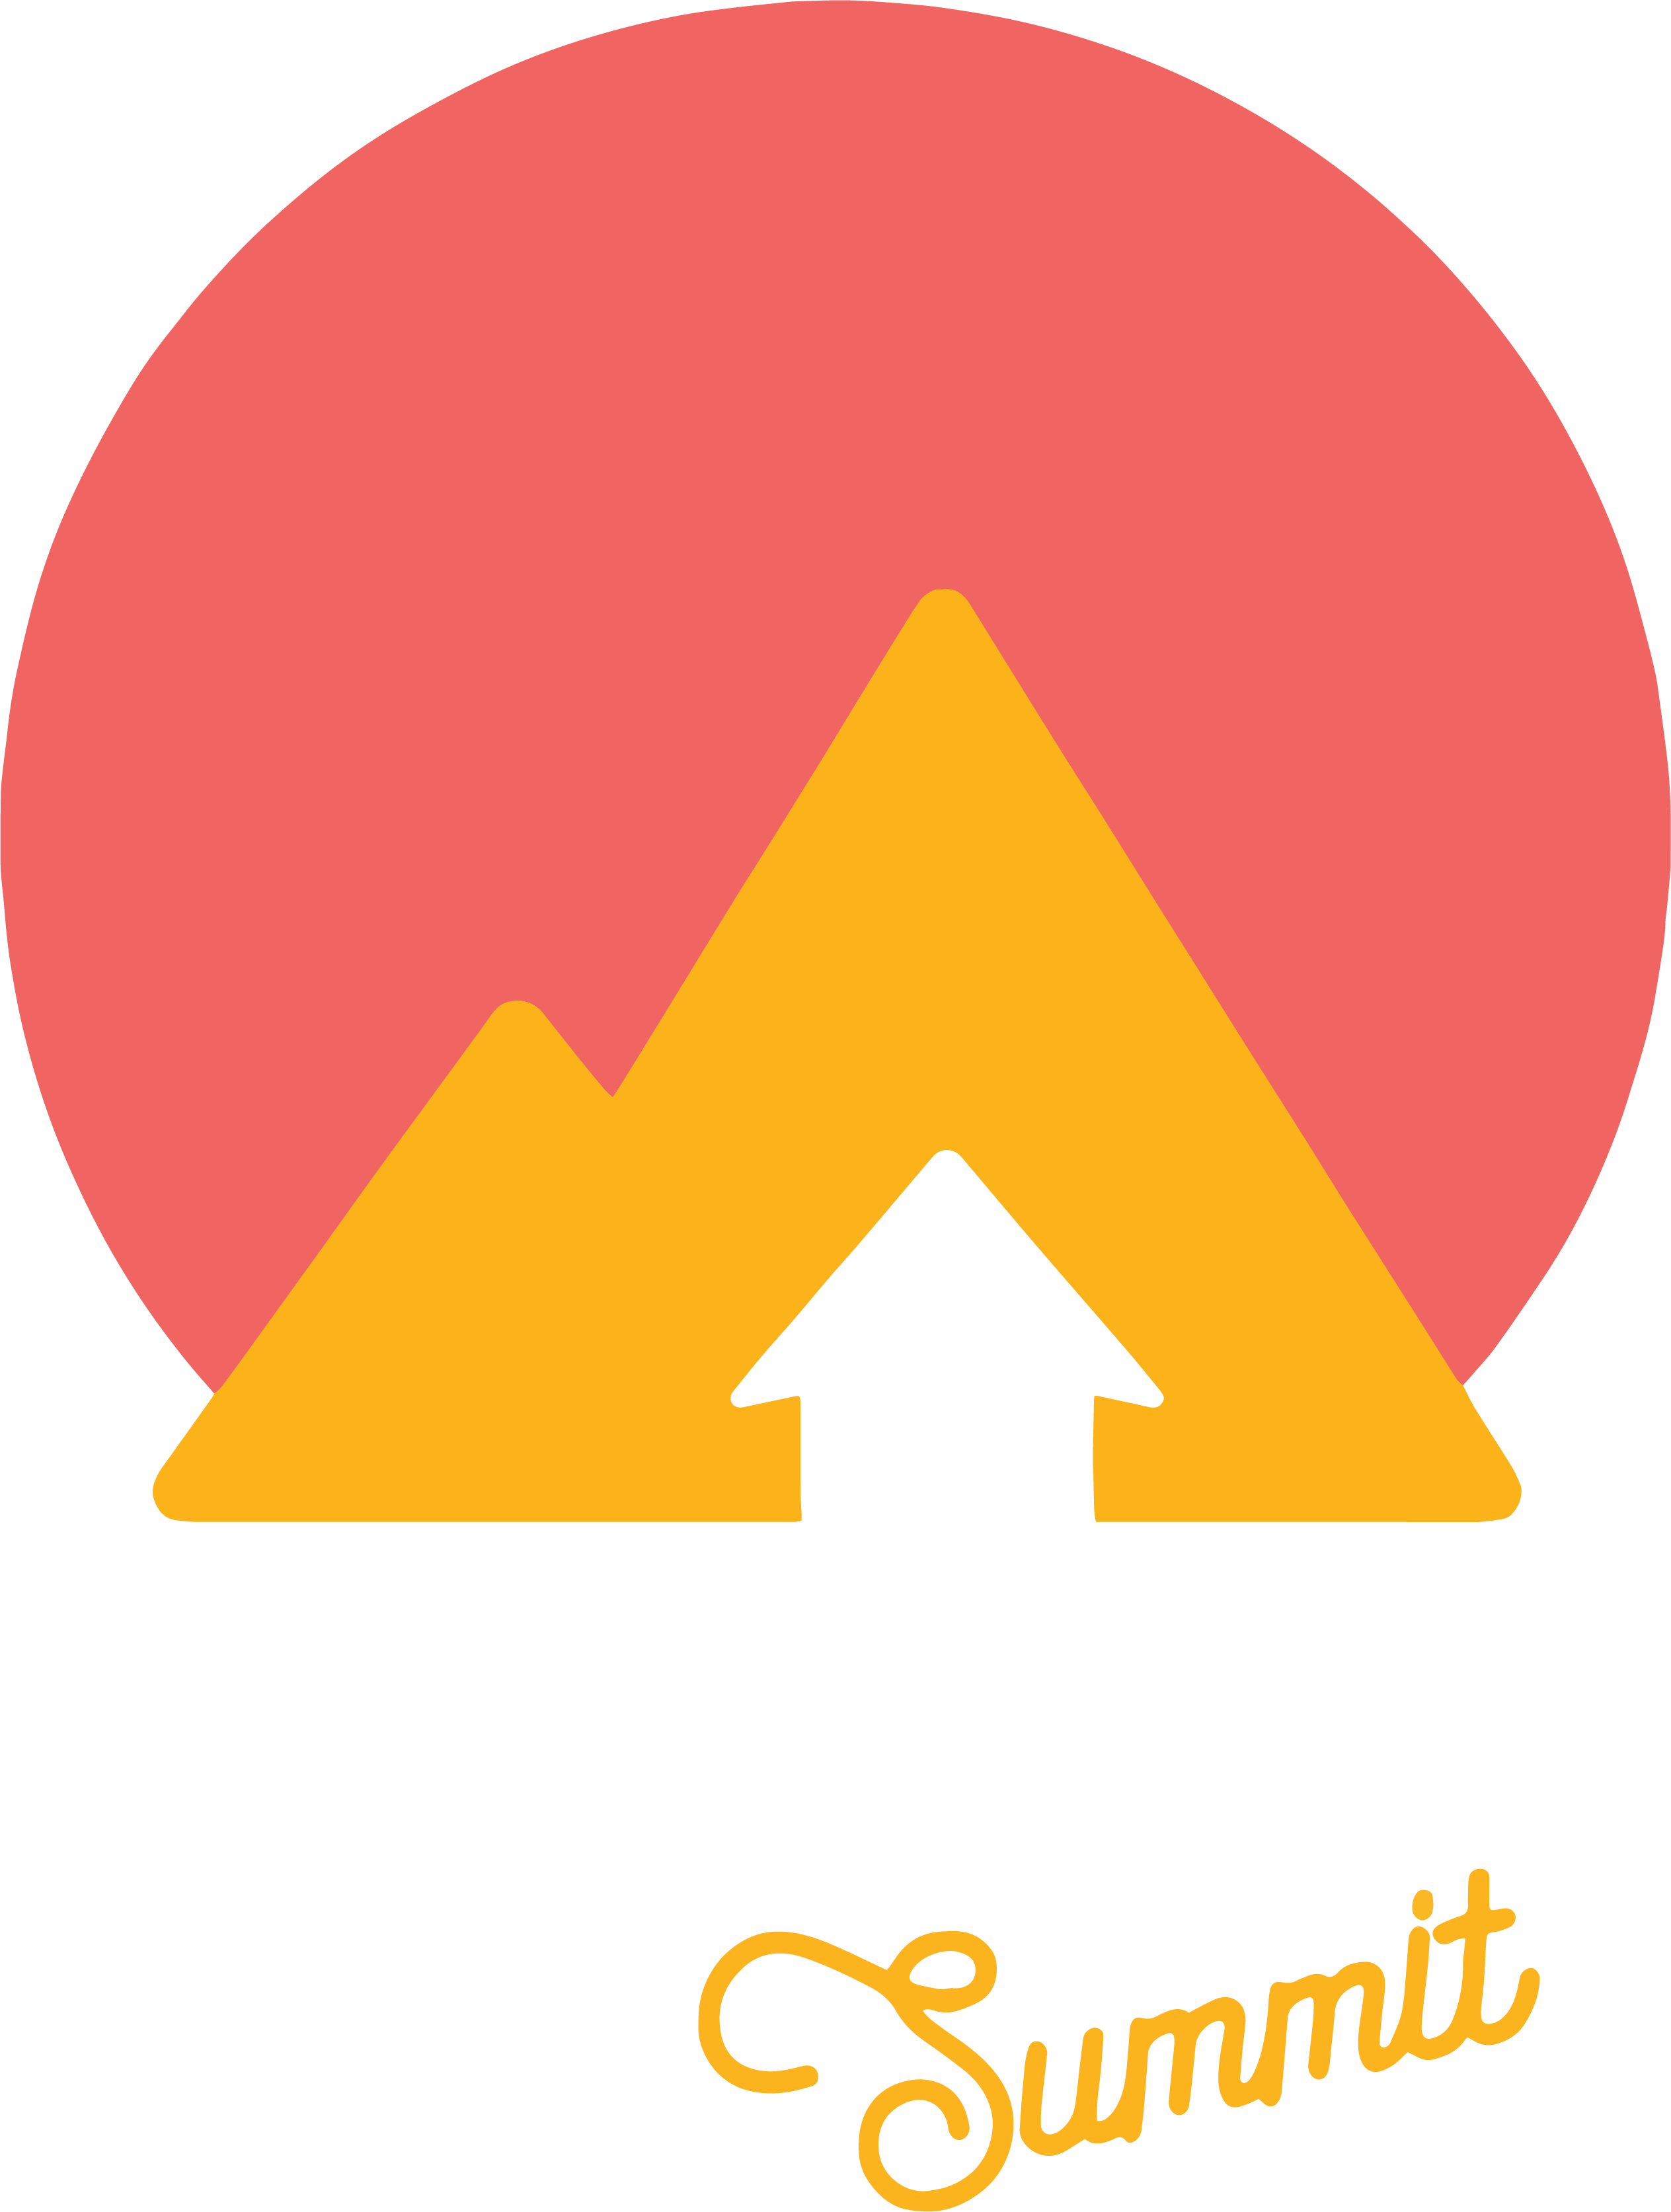 2020 Senior Housing & Home Care Summit